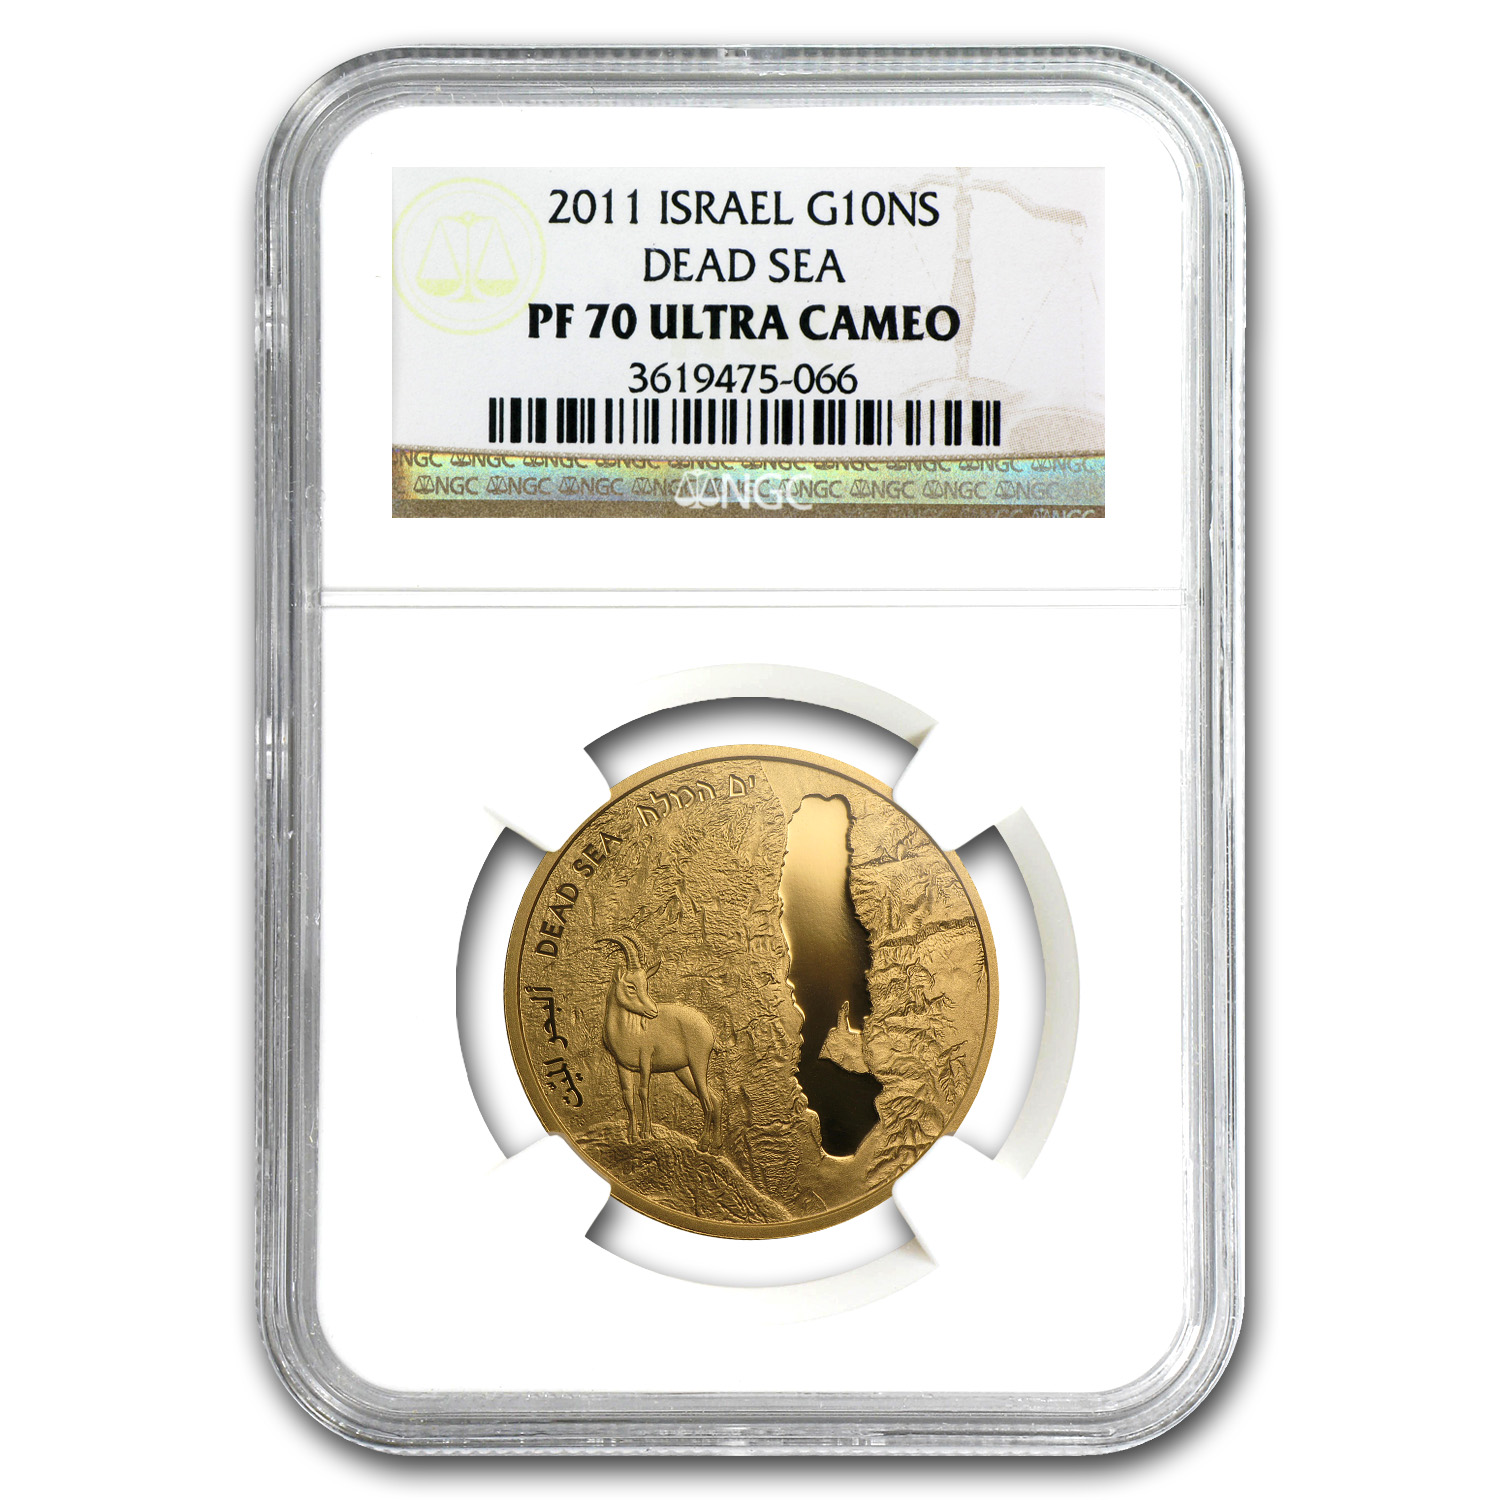 2011 Israel 3-Coin Gold & Silver Dead Sea Set MS/PF-70 NGC